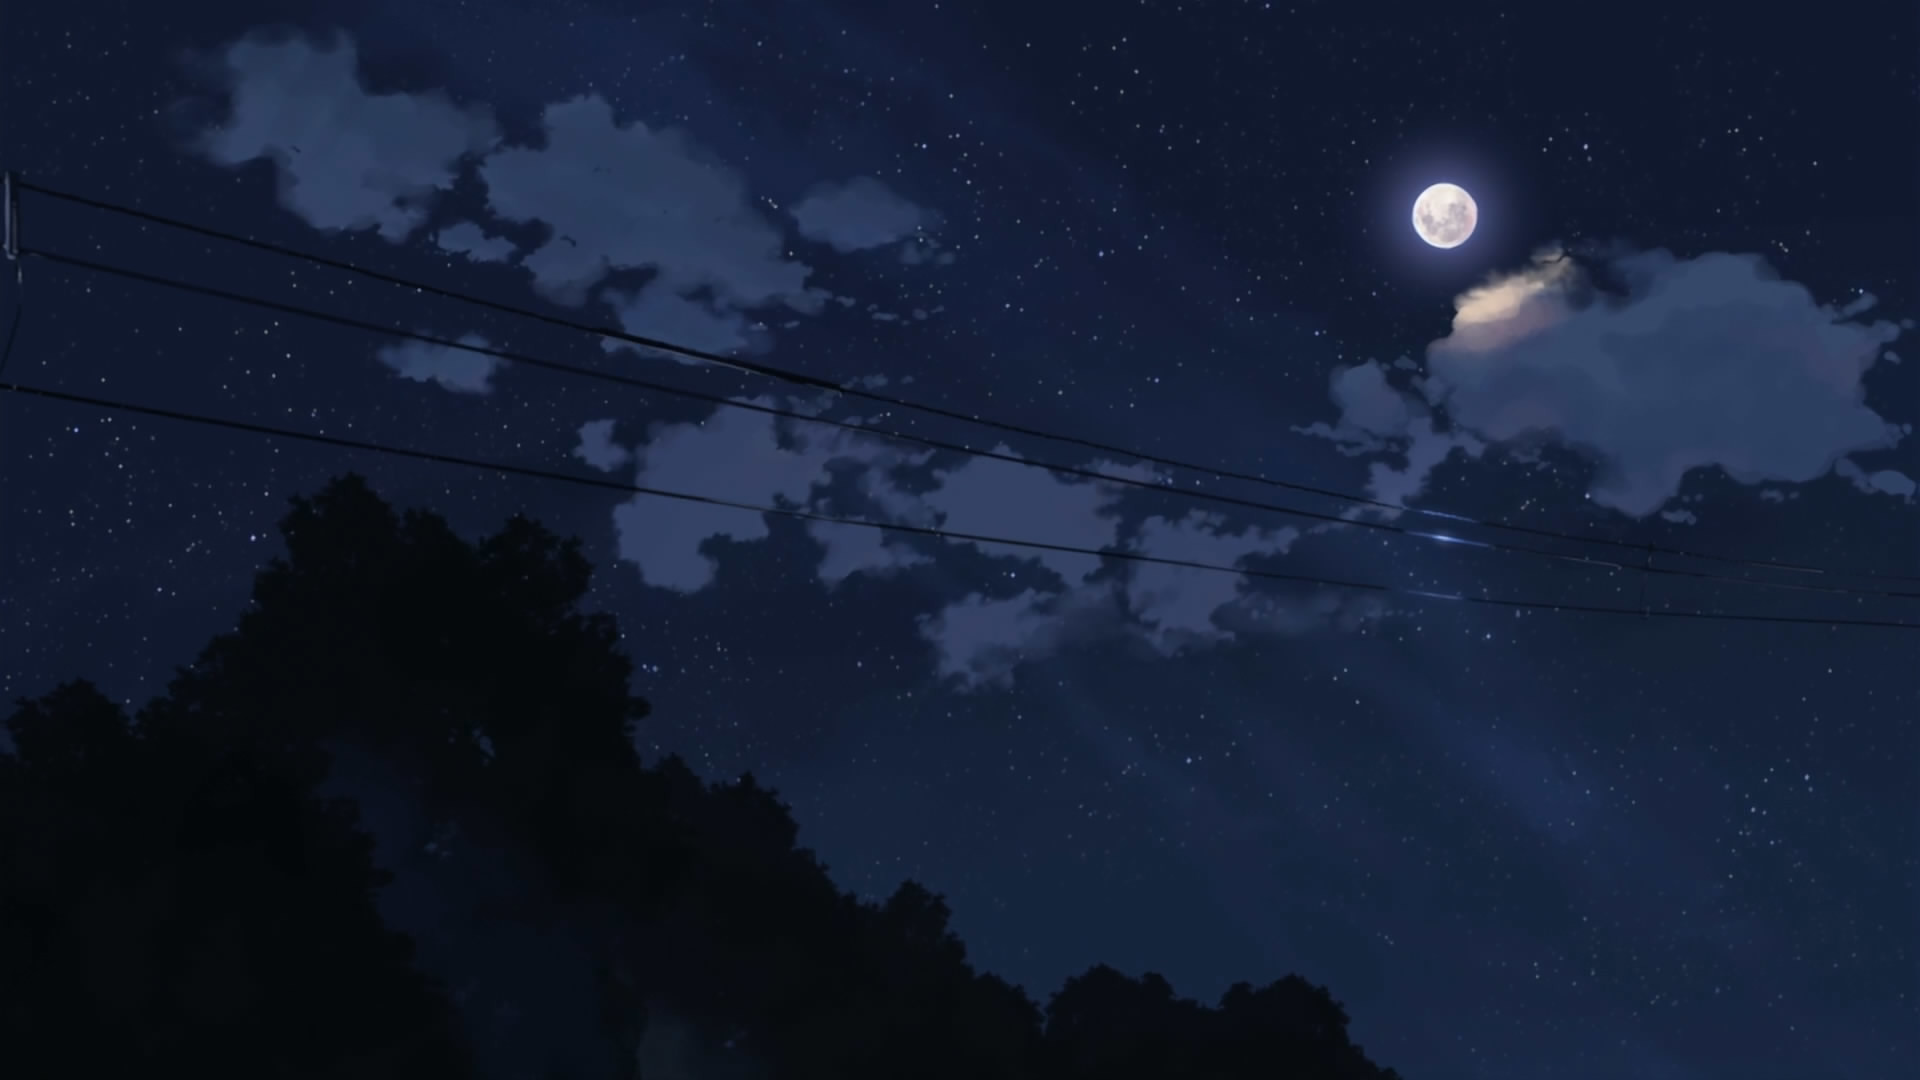 … Anime Night Sky Background Download anime night sky wallpaper 5776 free  powerpoint background